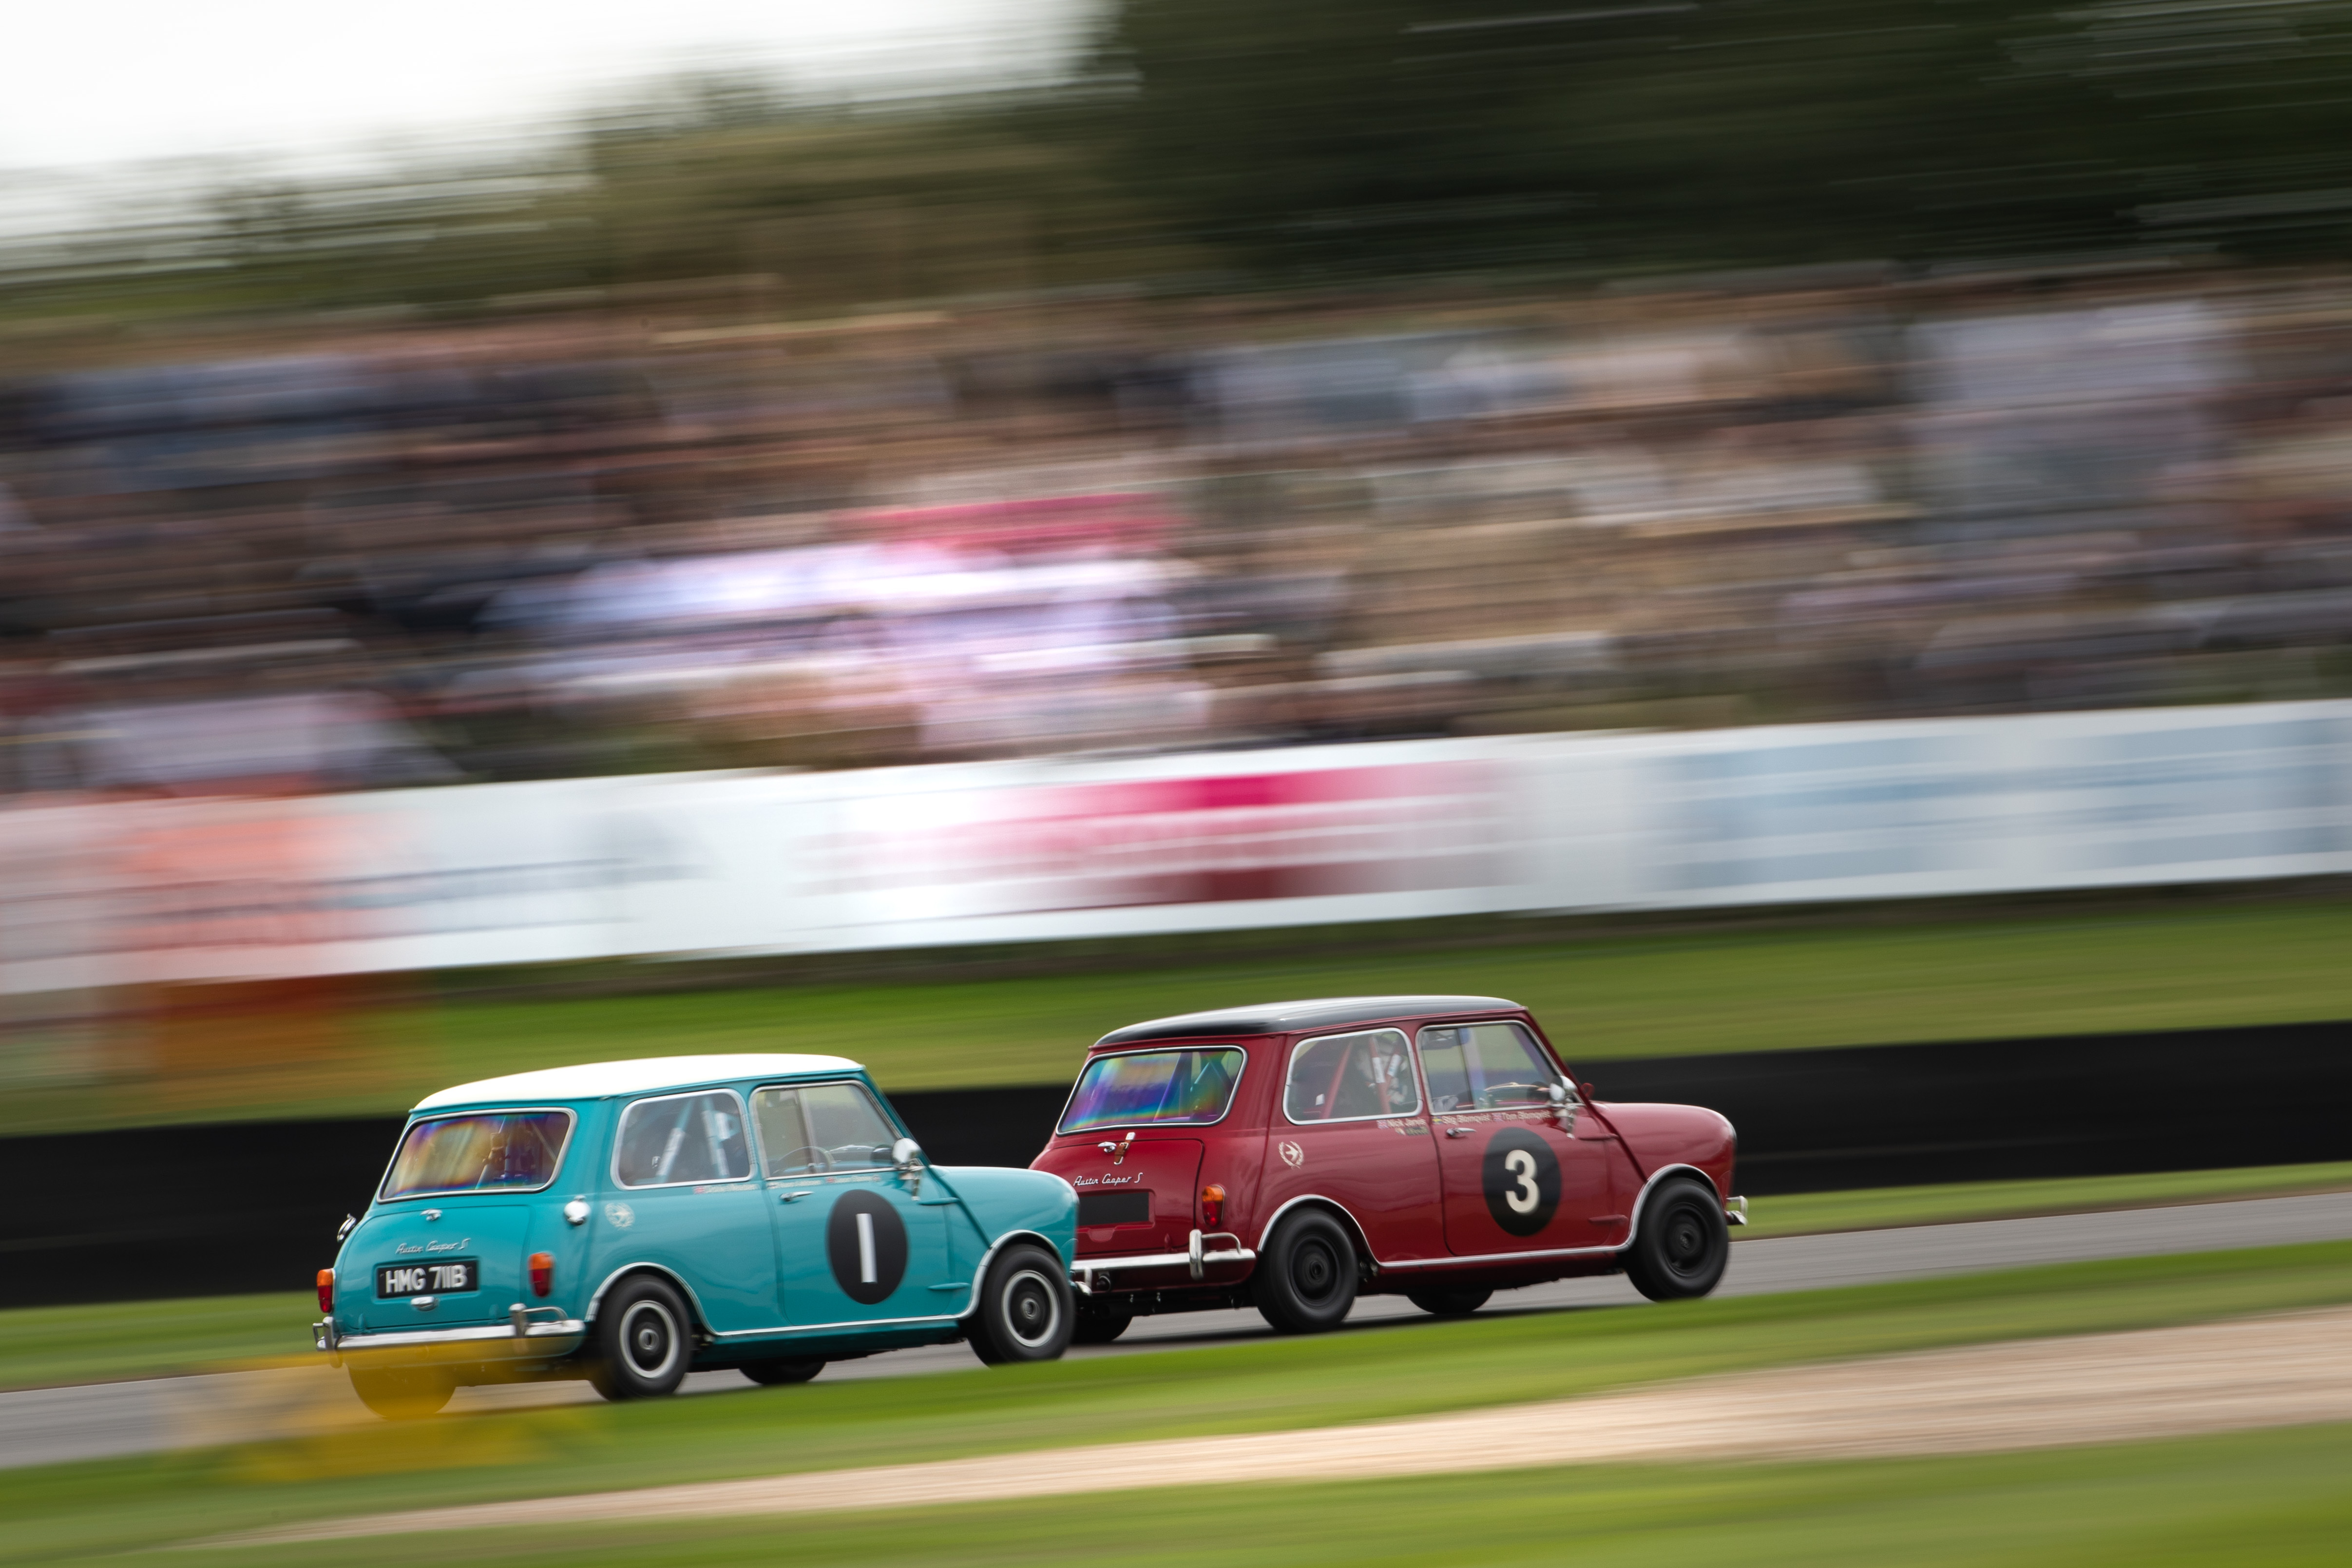 Ice race, VW brings back new and historic cars for Austrian ice racing revival, ClassicCars.com Journal